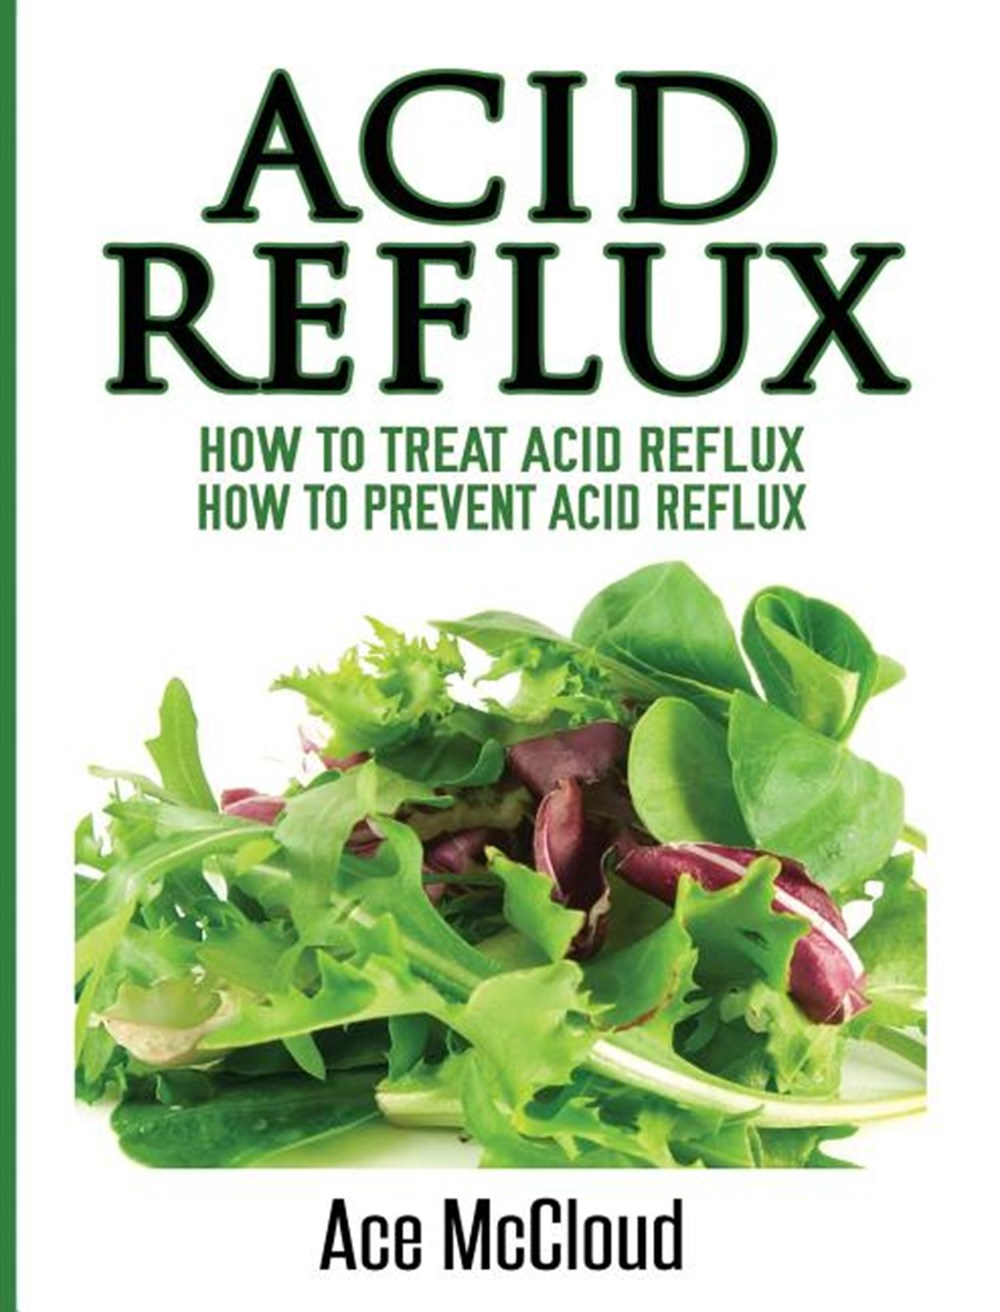 Acid Reflux How To Treat Acid Reflux: How To Prevent Acid Reflux